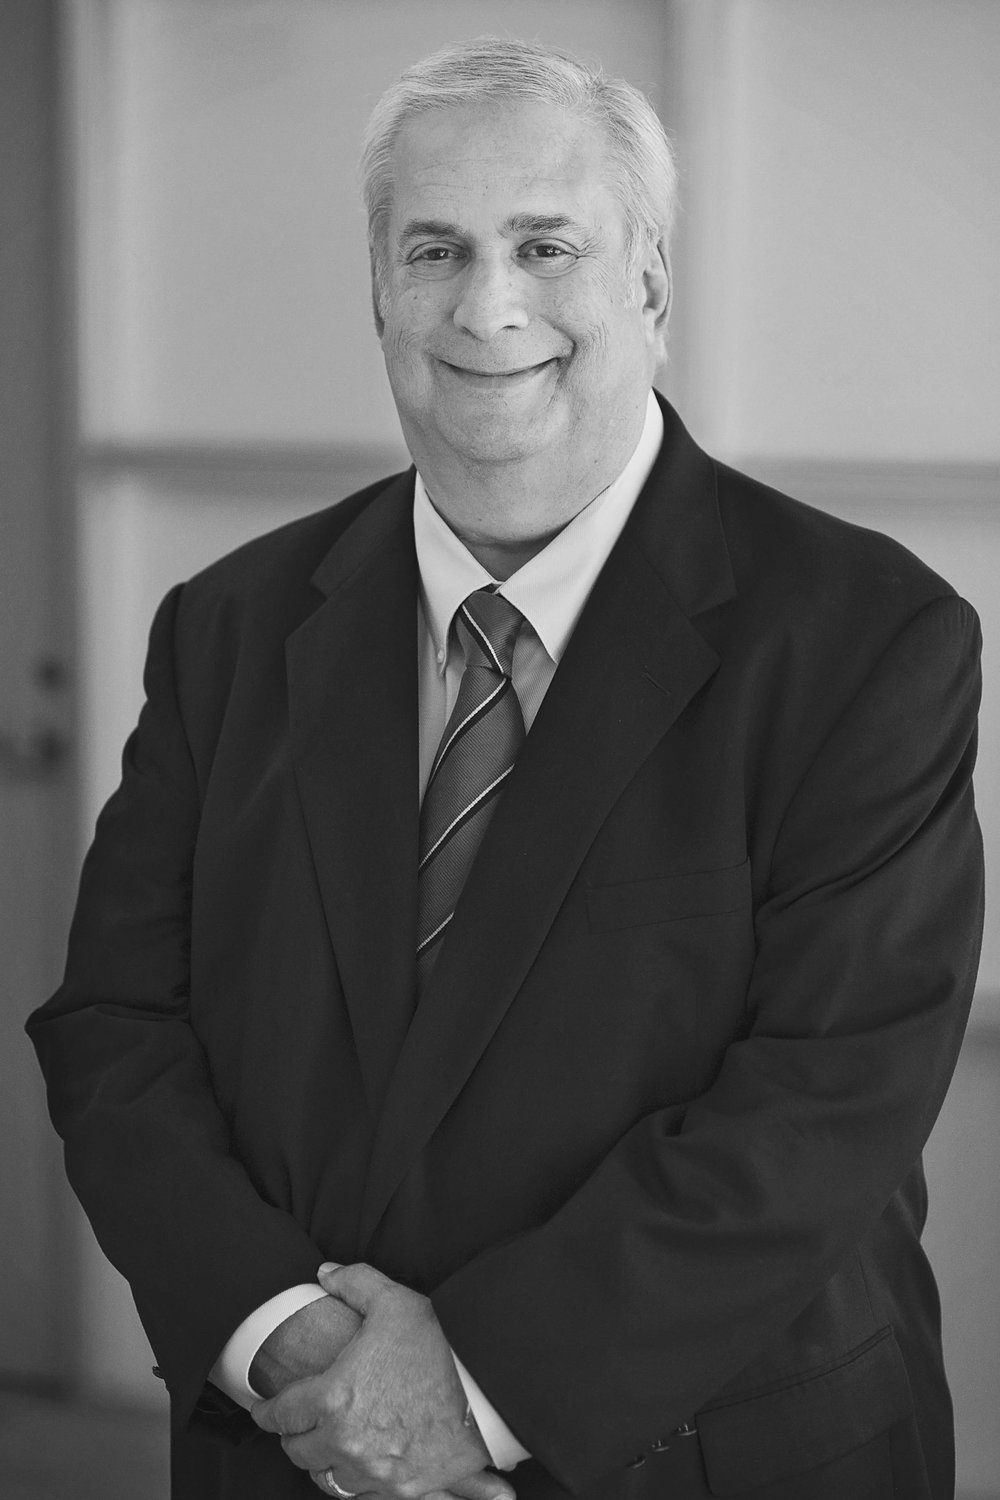 Ed has been responsible for building Enseo's extensive patent portfolio, strategic planning and contract administration.  Ed is a seasoned business and technology executive delivering industry-leading innovative products and services, driving paradigm-changing business and technology strategies, and improving operating results and increasing company growth for more than 45 years.      Prior to joining Enseo, Ed held both executive management positions including CEO of InnVision Networks, CEO of Elsafe, VP of New Product Development for Spectravision, CEO of Multicom Services and CEO of LDX Telecom Services.  In hospitality, since 1976, he has advised and participated in strategic business development for Marriott, Sheraton, Carlson, Spectravision, Elsafe and InnVision Networks and served on the Board of Directors of several technology start-ups.      Ed has a BSBA from the University of Maryland and an MBA from the State University of New York at Albany.